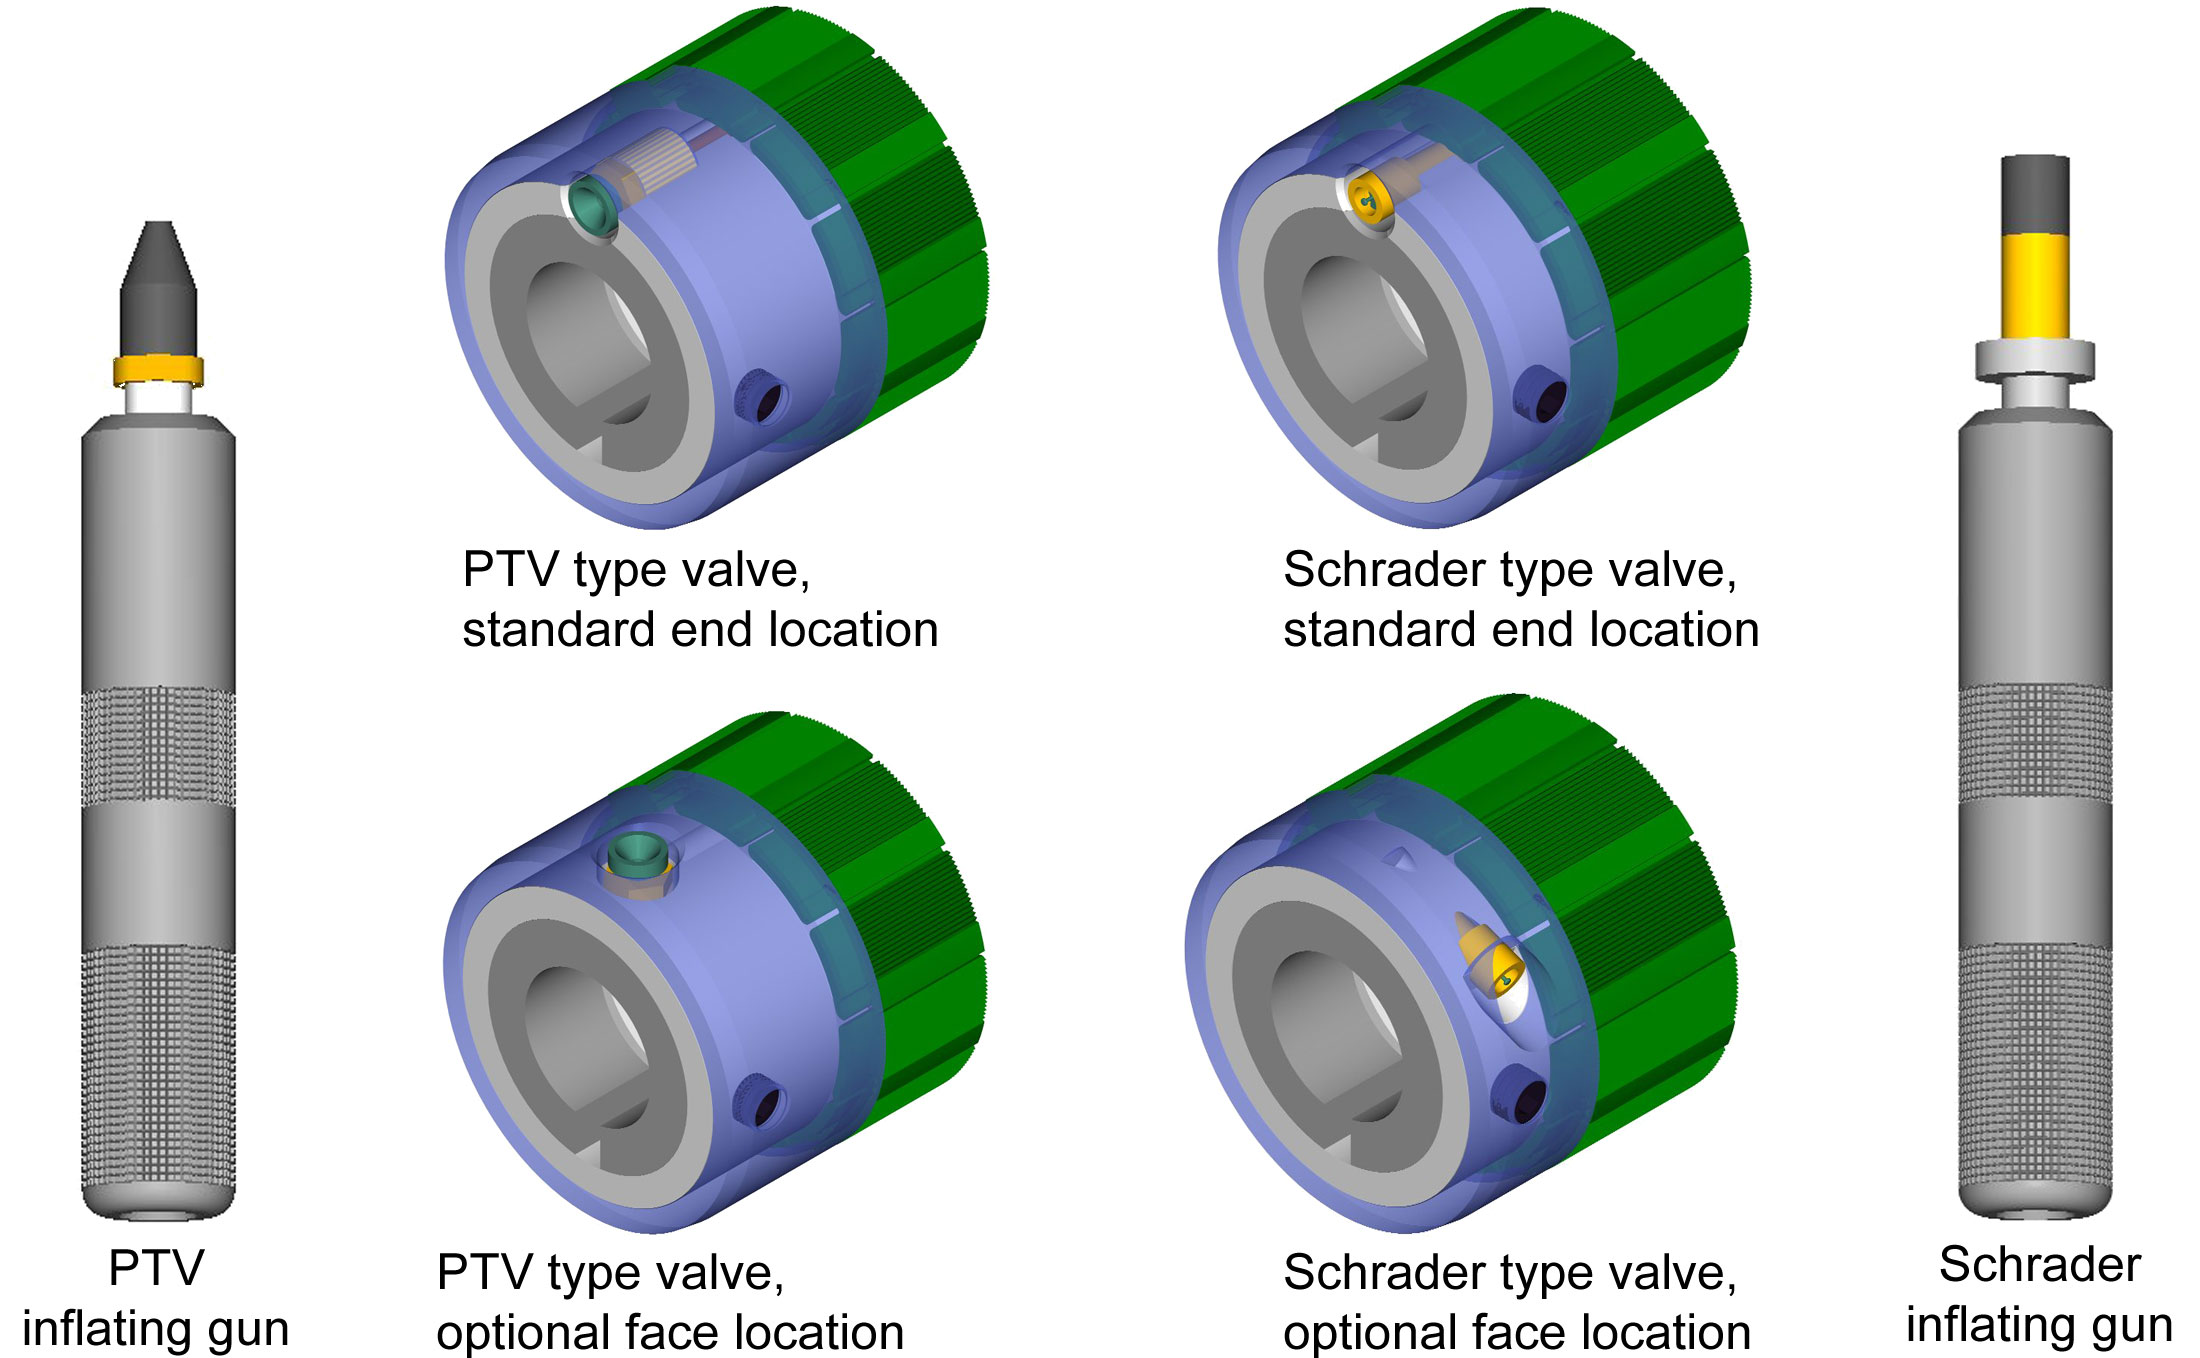 Valve Options for air shafts